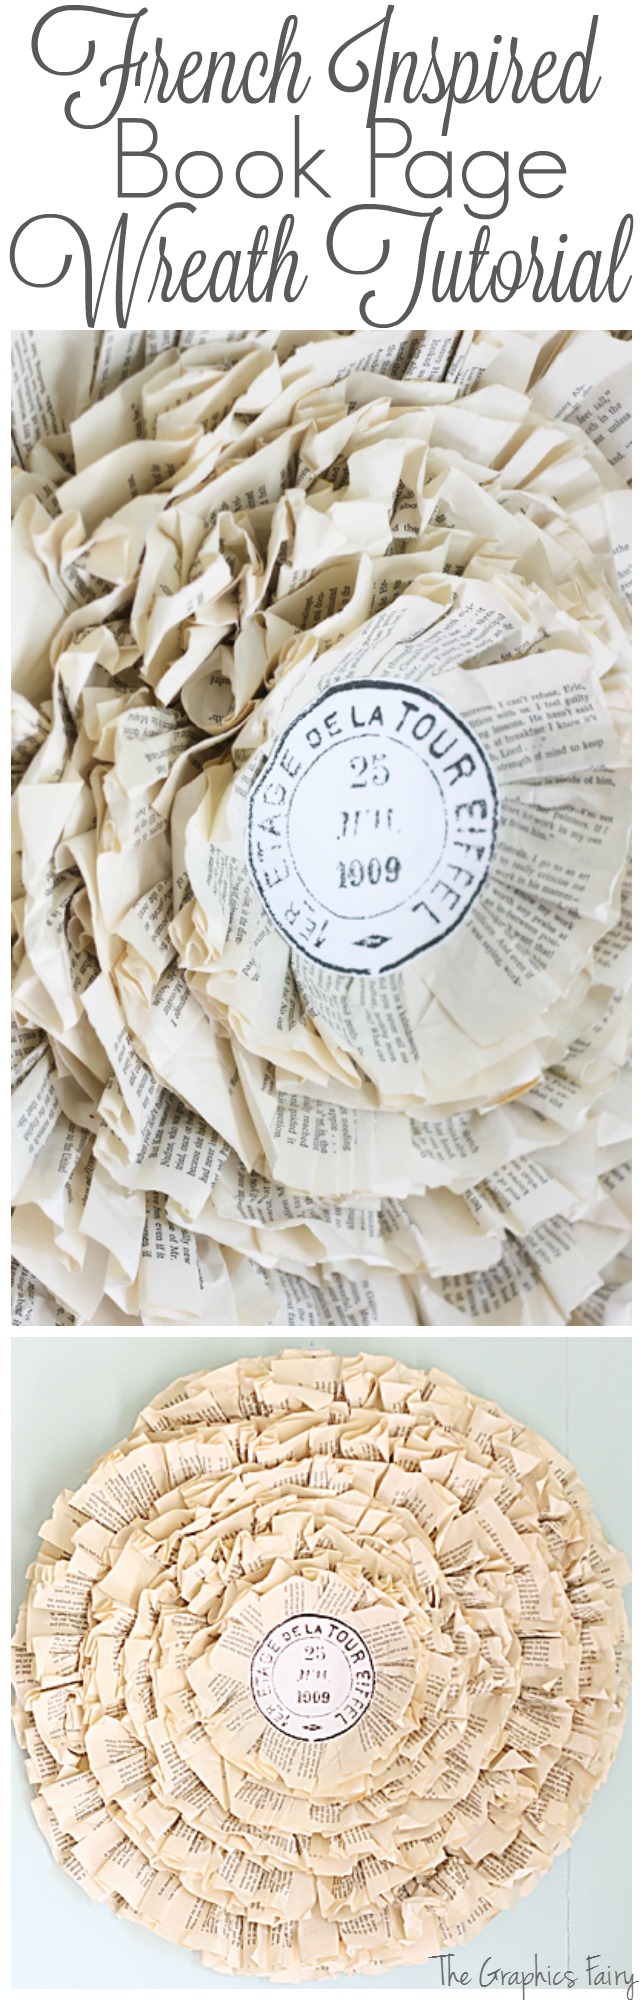 French Inspired Book Page Wreath Tutorial - The Graphics Fairy